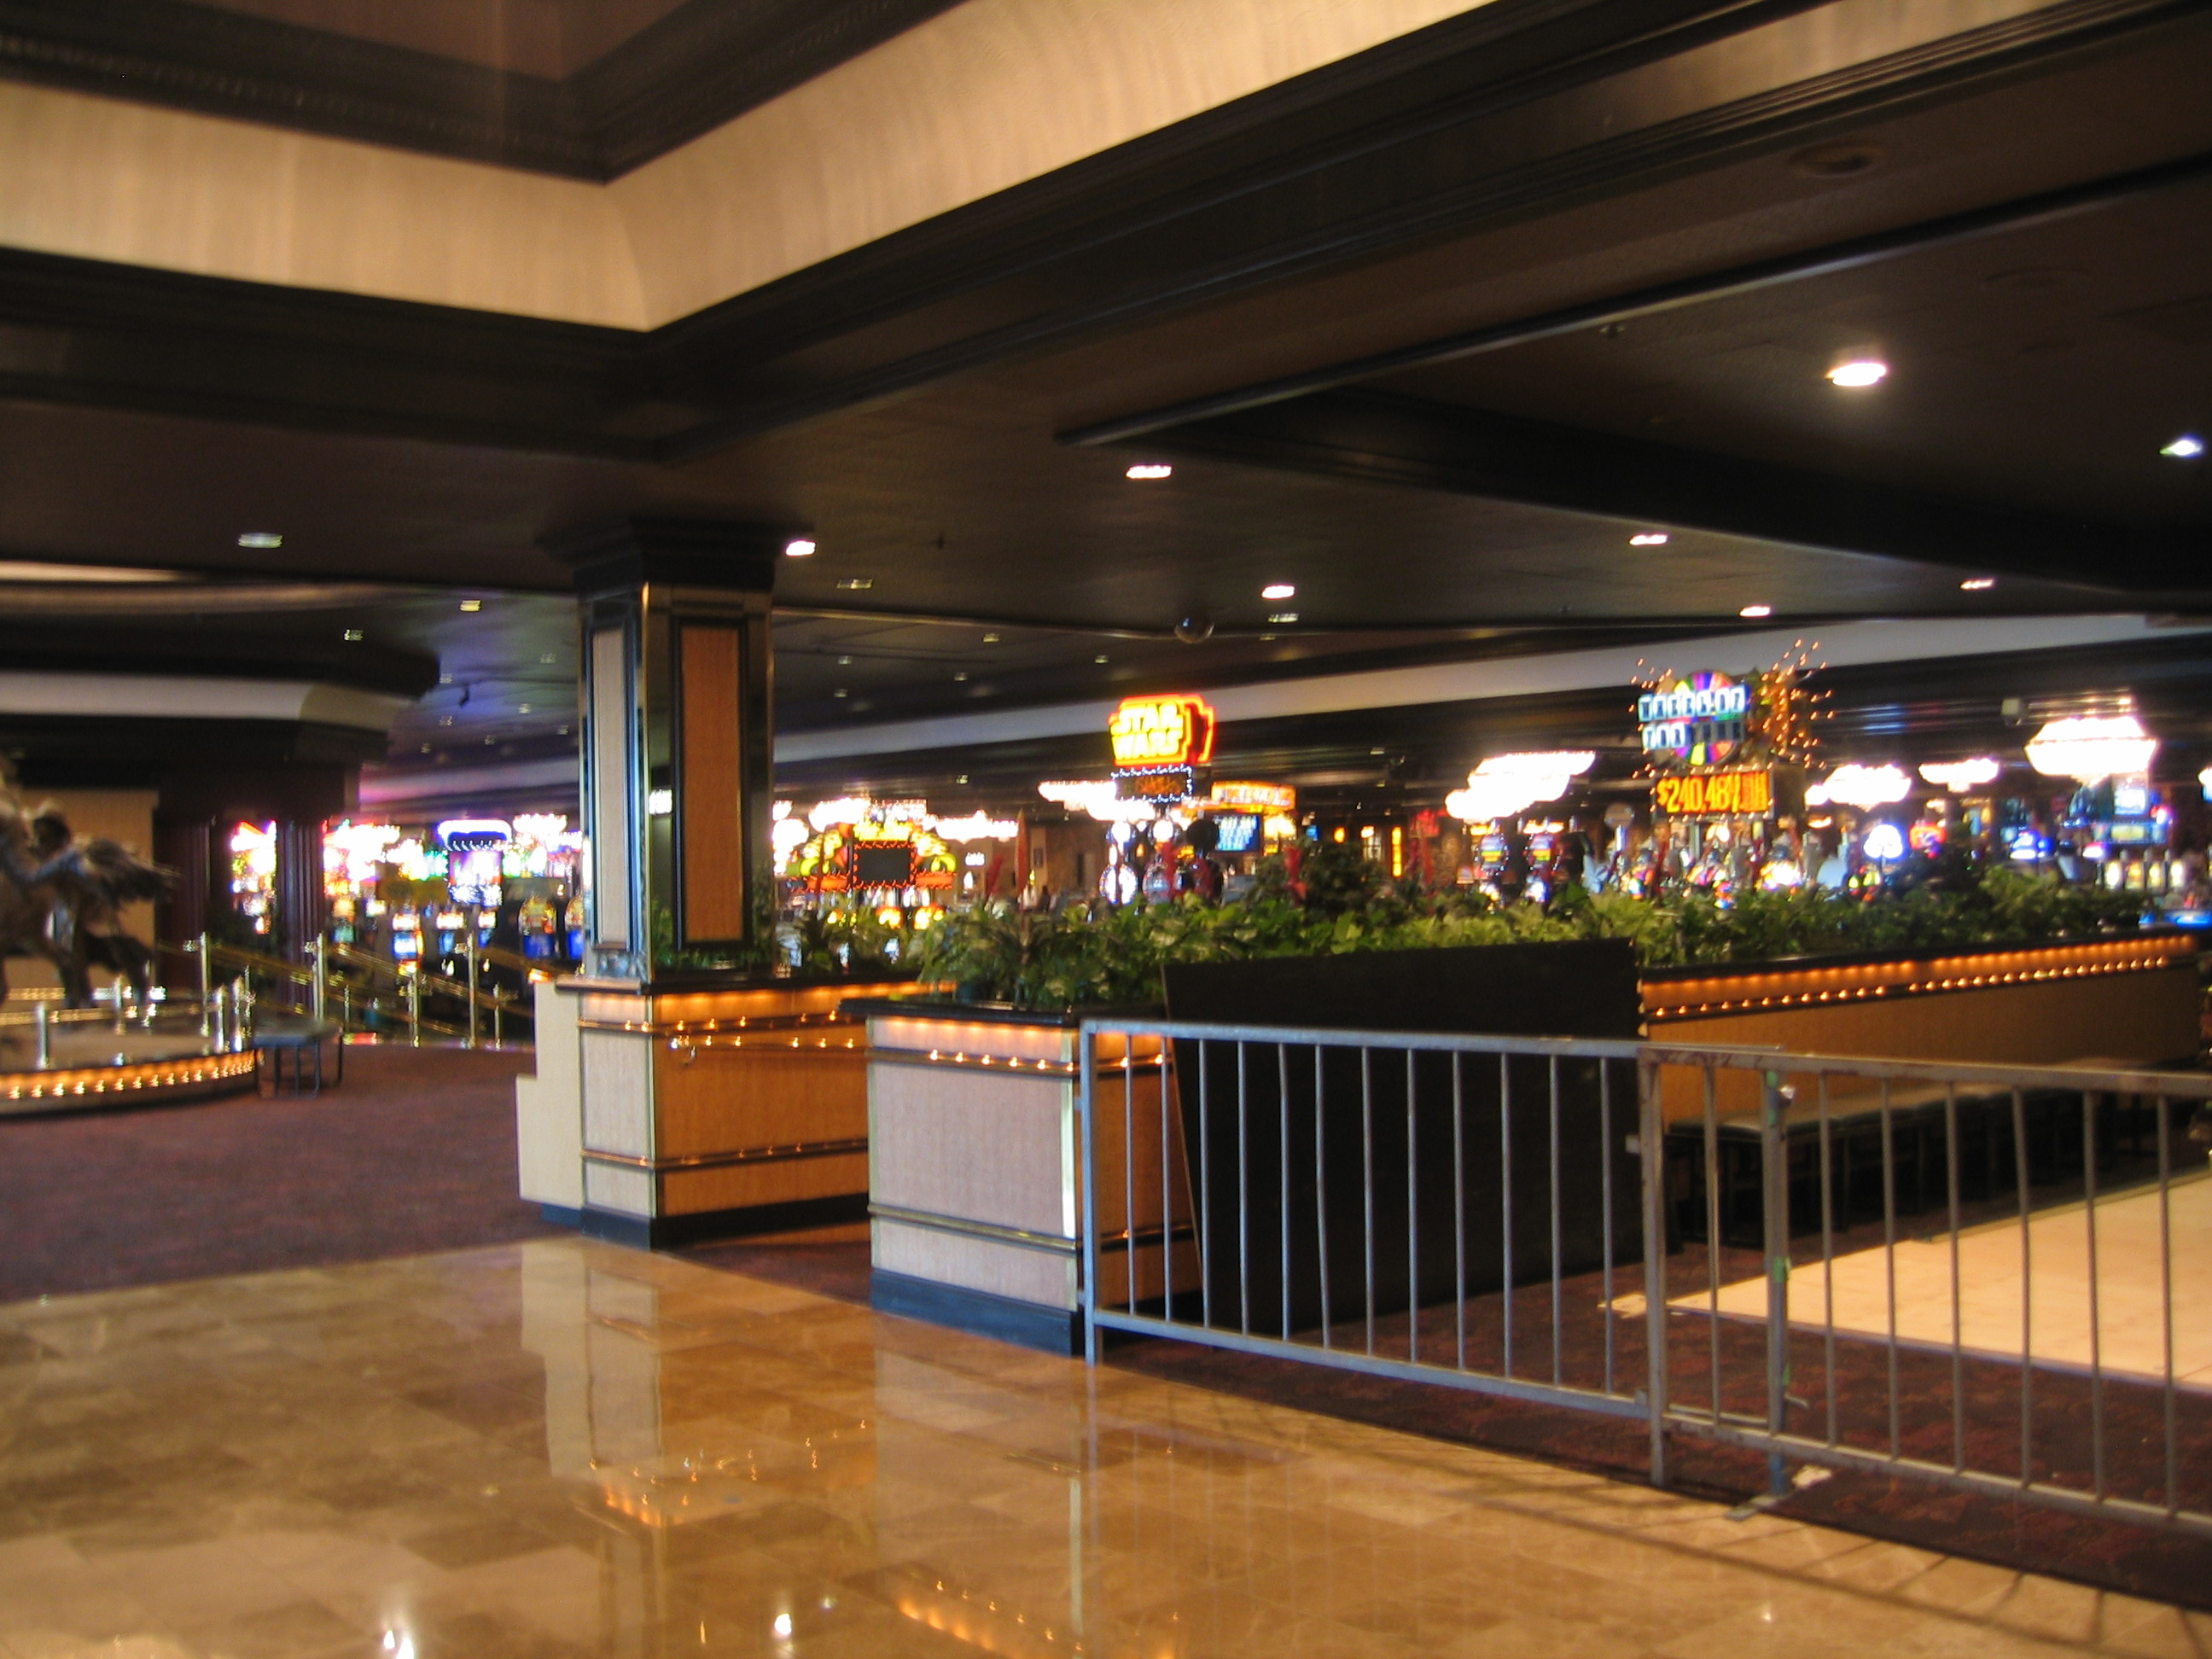 Grand Sierra Resort - Interior1